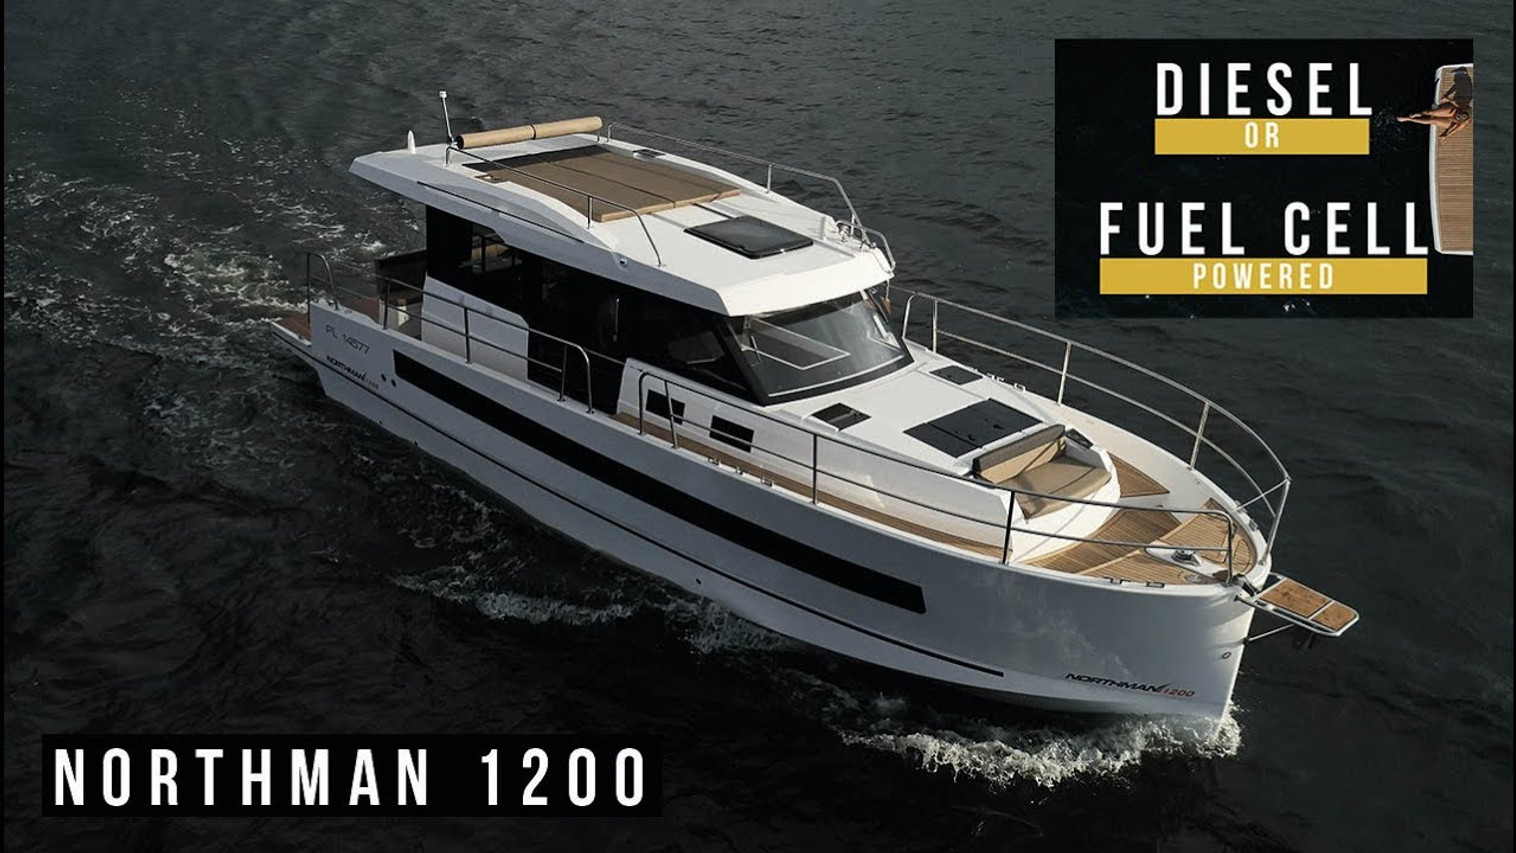 Northman 1200 interior and exterior video